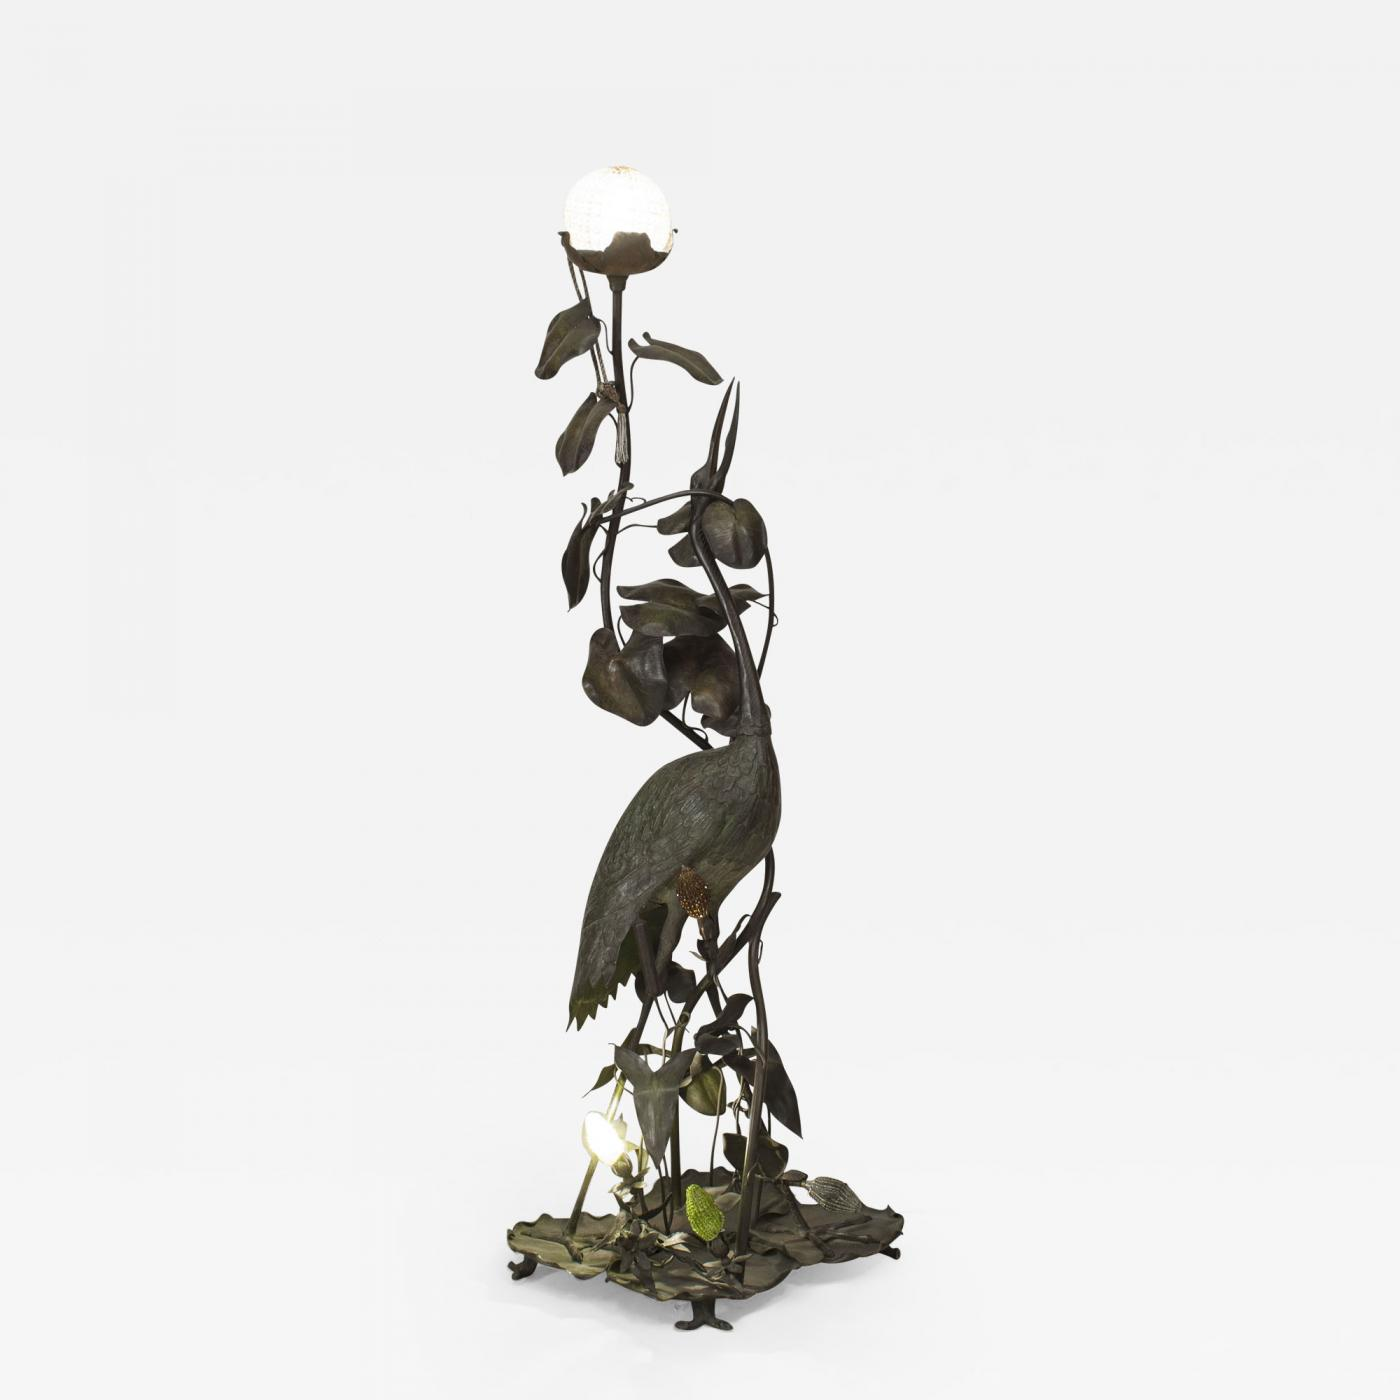 French Art Nouveau Floor Lamp of a Large Heron Figure